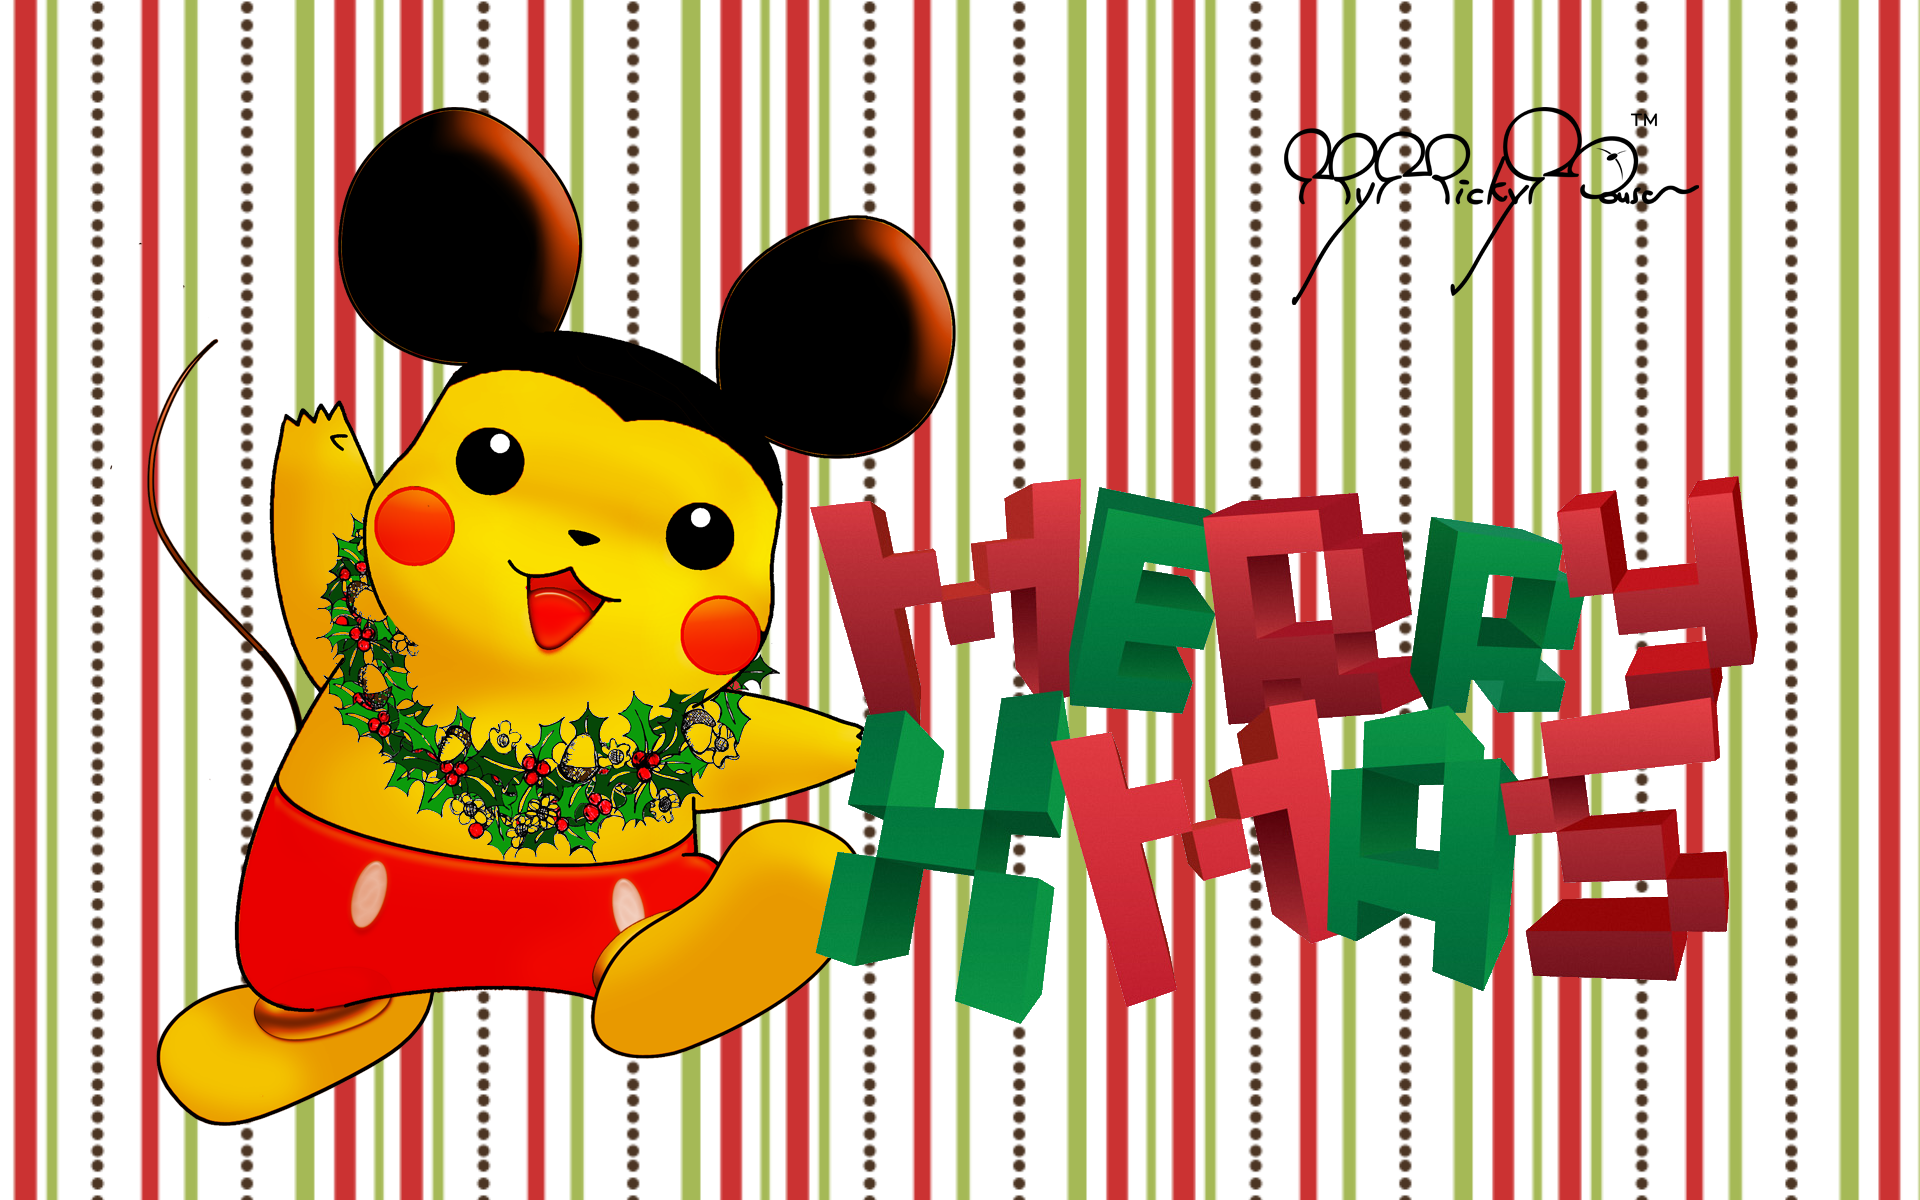 Beautiful Wallpaper Christmas Mickey Mouse - merry_christmas_wallpaper_pikachu__mickey_1920_px_by_mymickymouse-d4jogi6  Perfect Image Reference_539779 .png